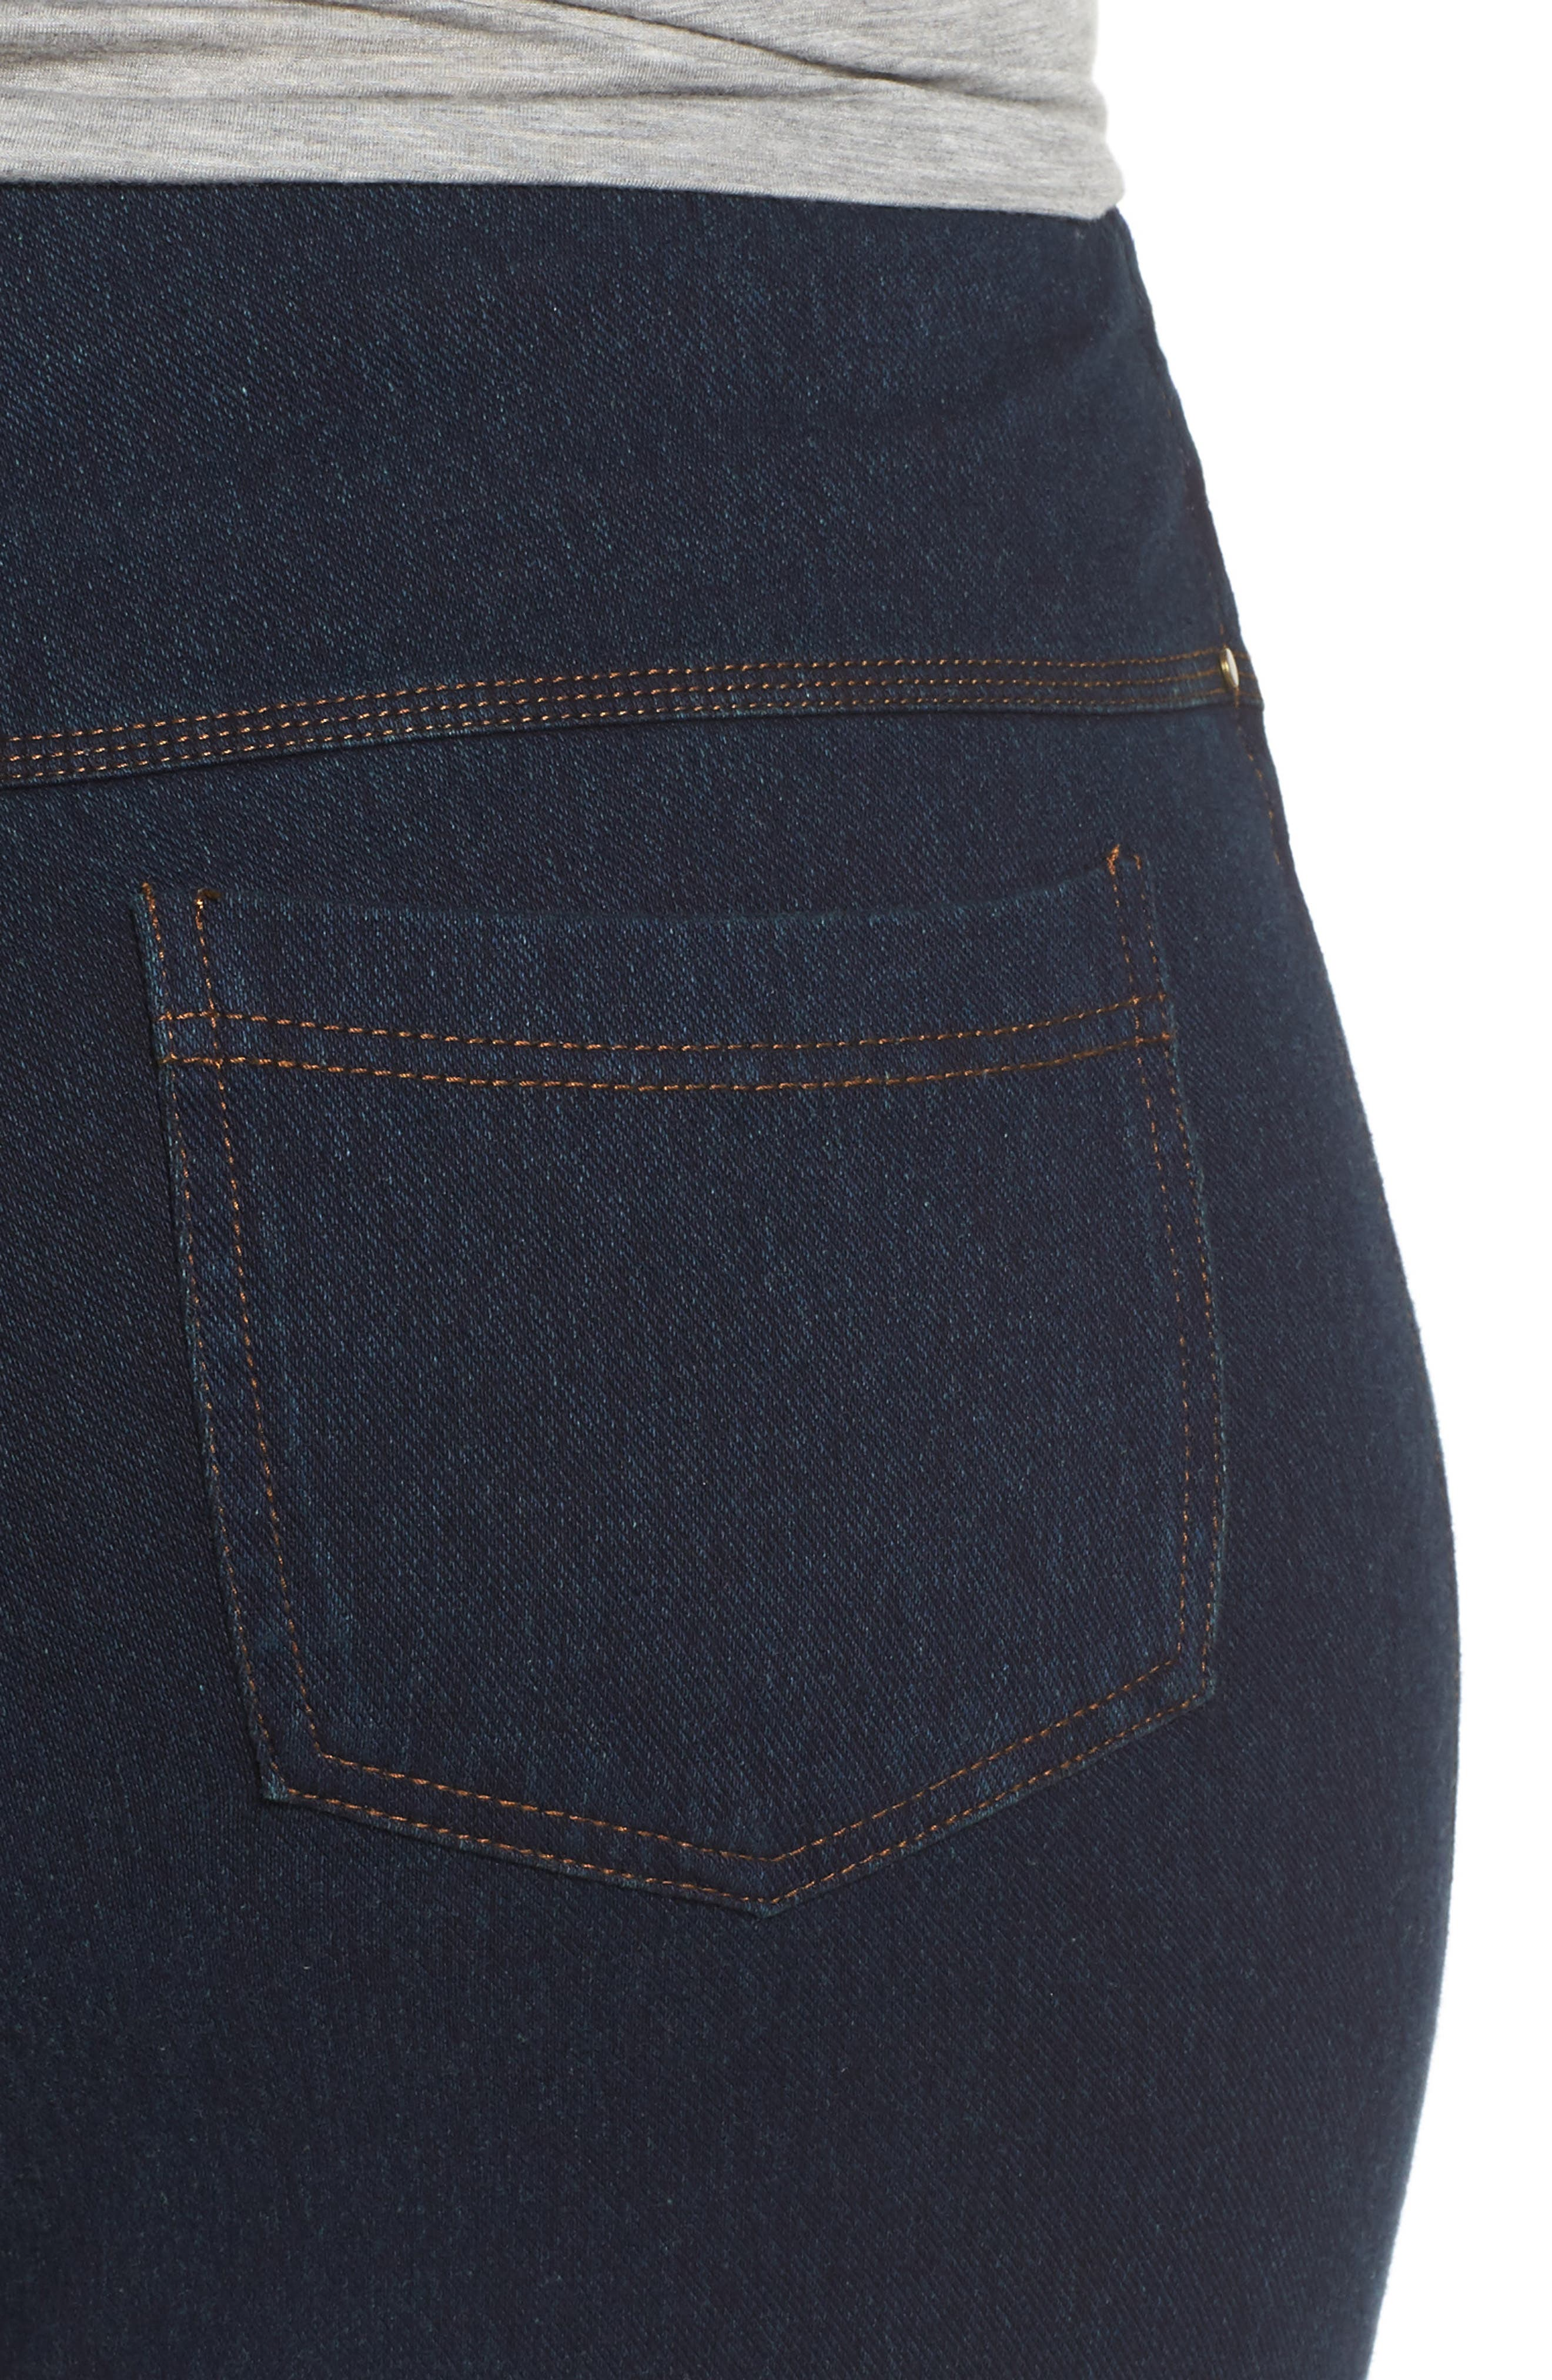 Alternate Image 4  - Lyssè Toothpick Denim Leggings (Plus Size)